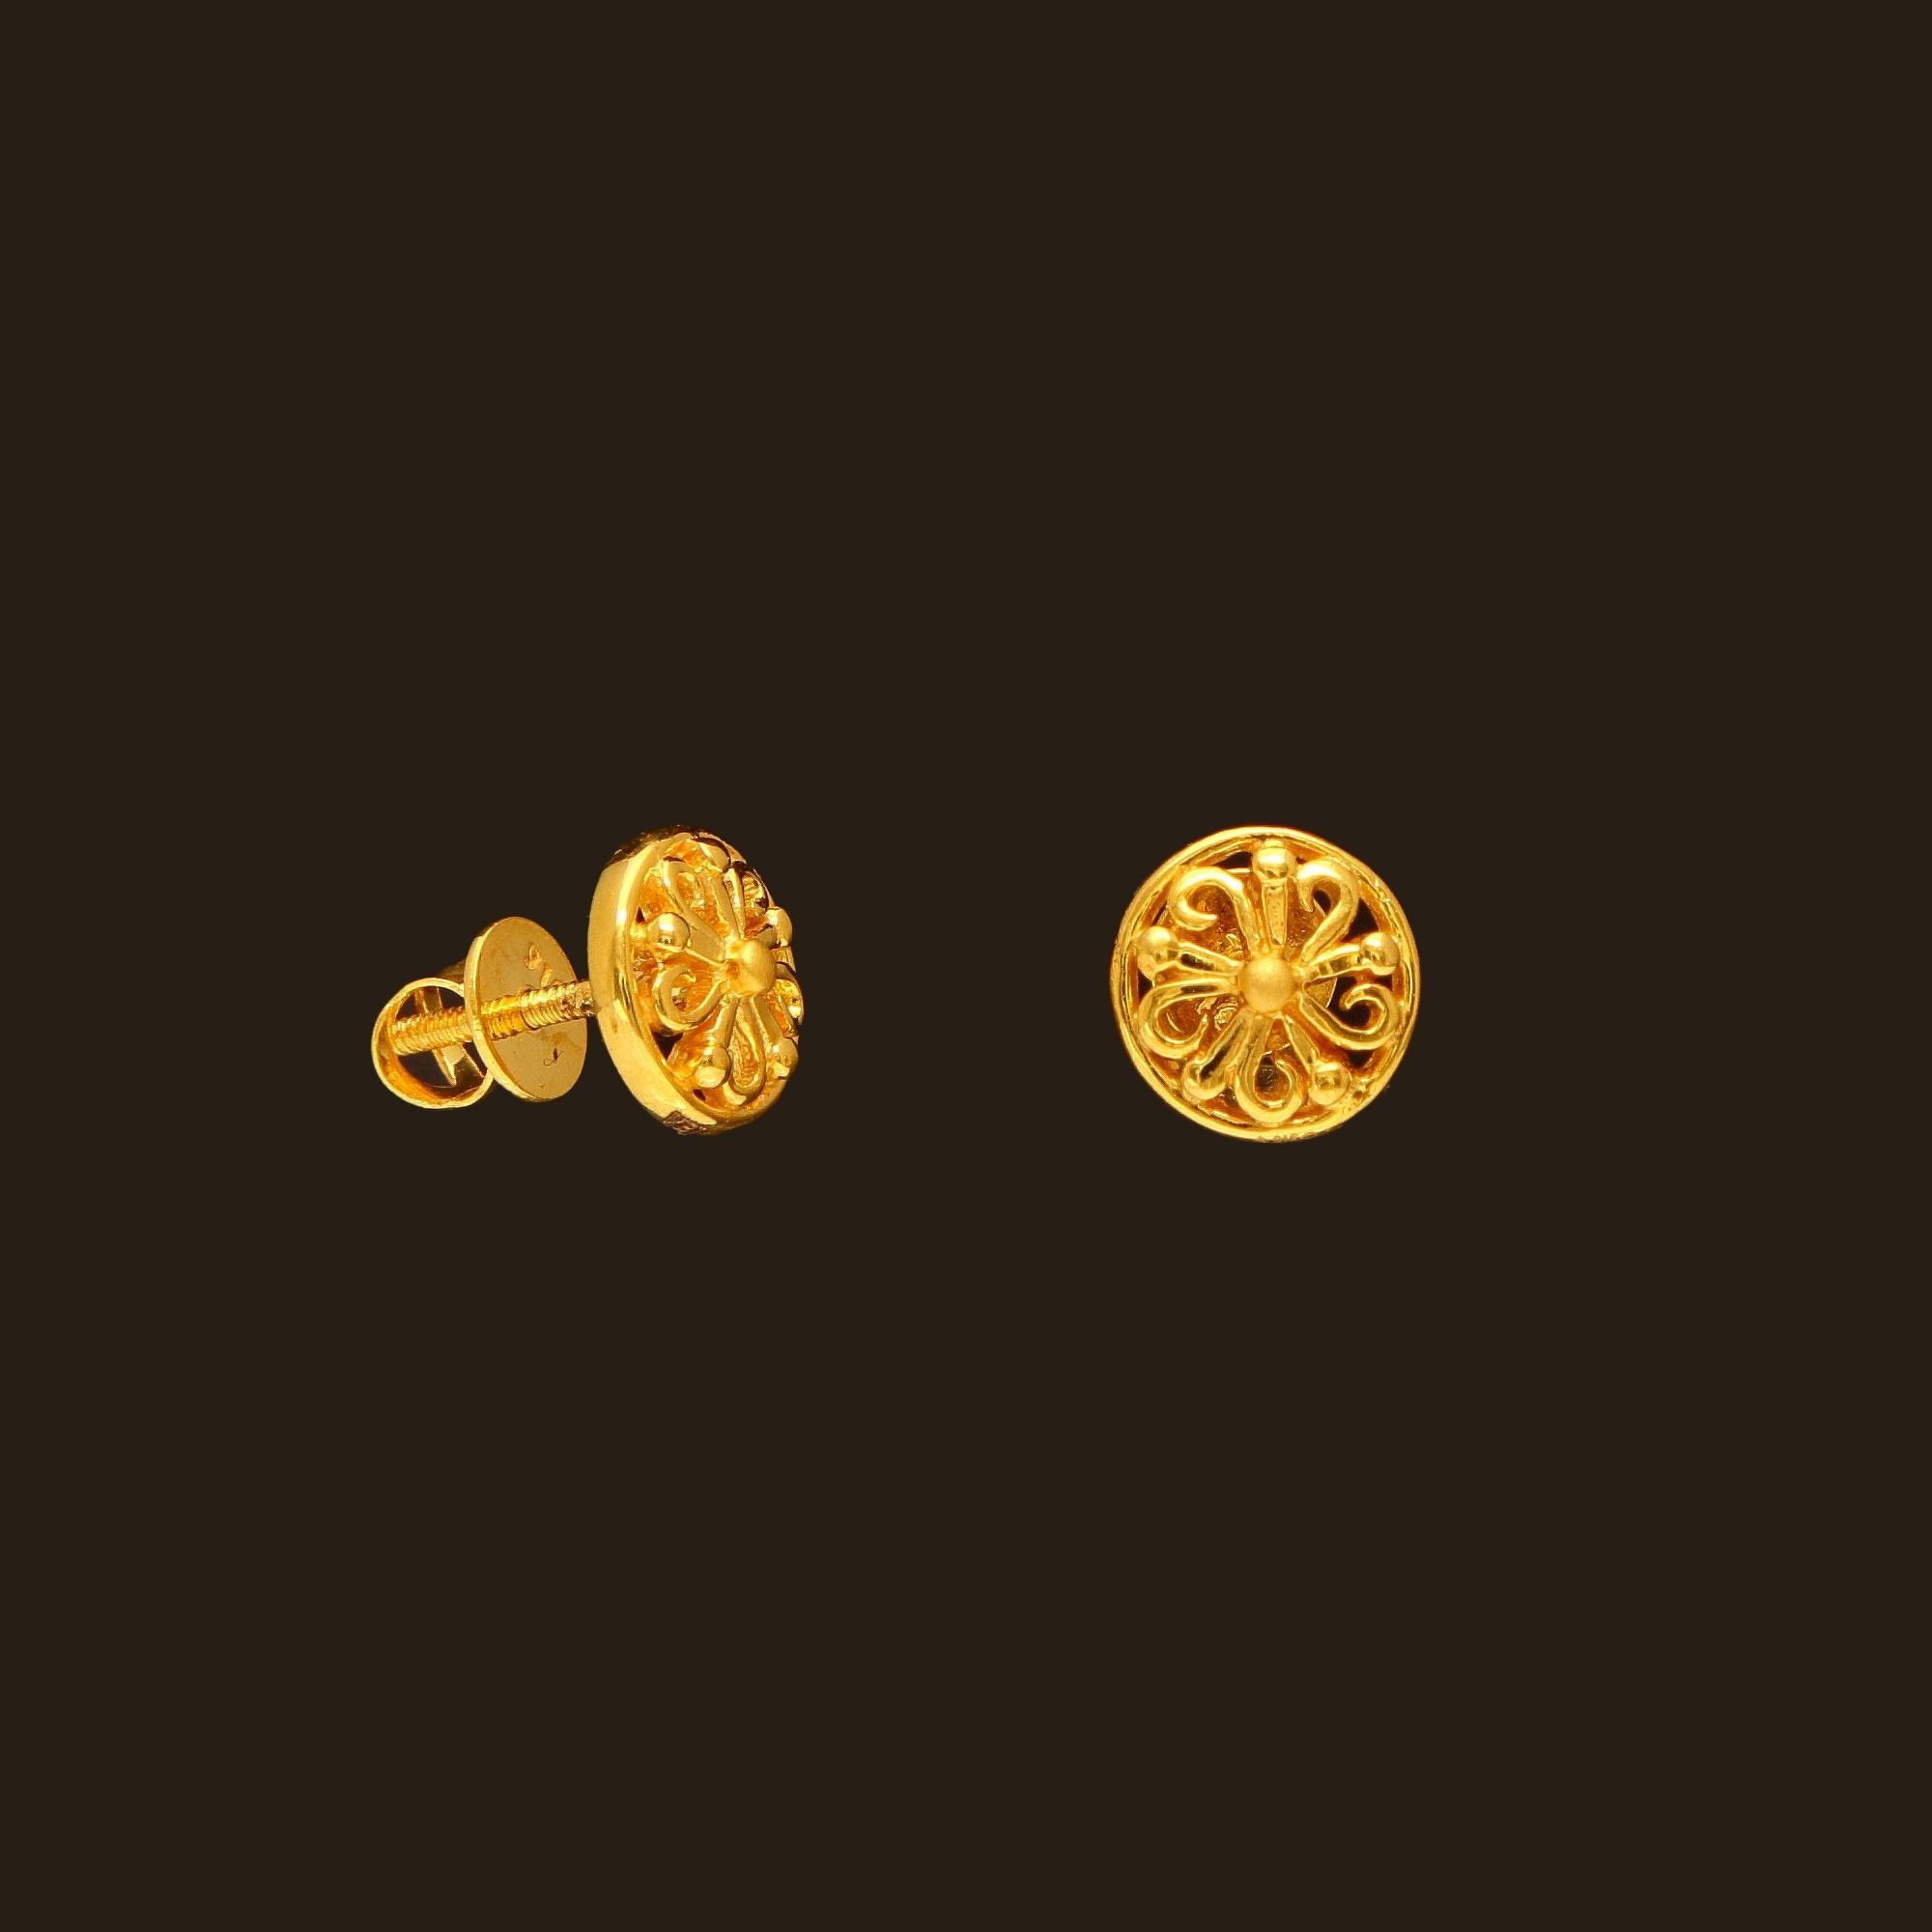 Small Gold Earrings Models Latest 22k Designs